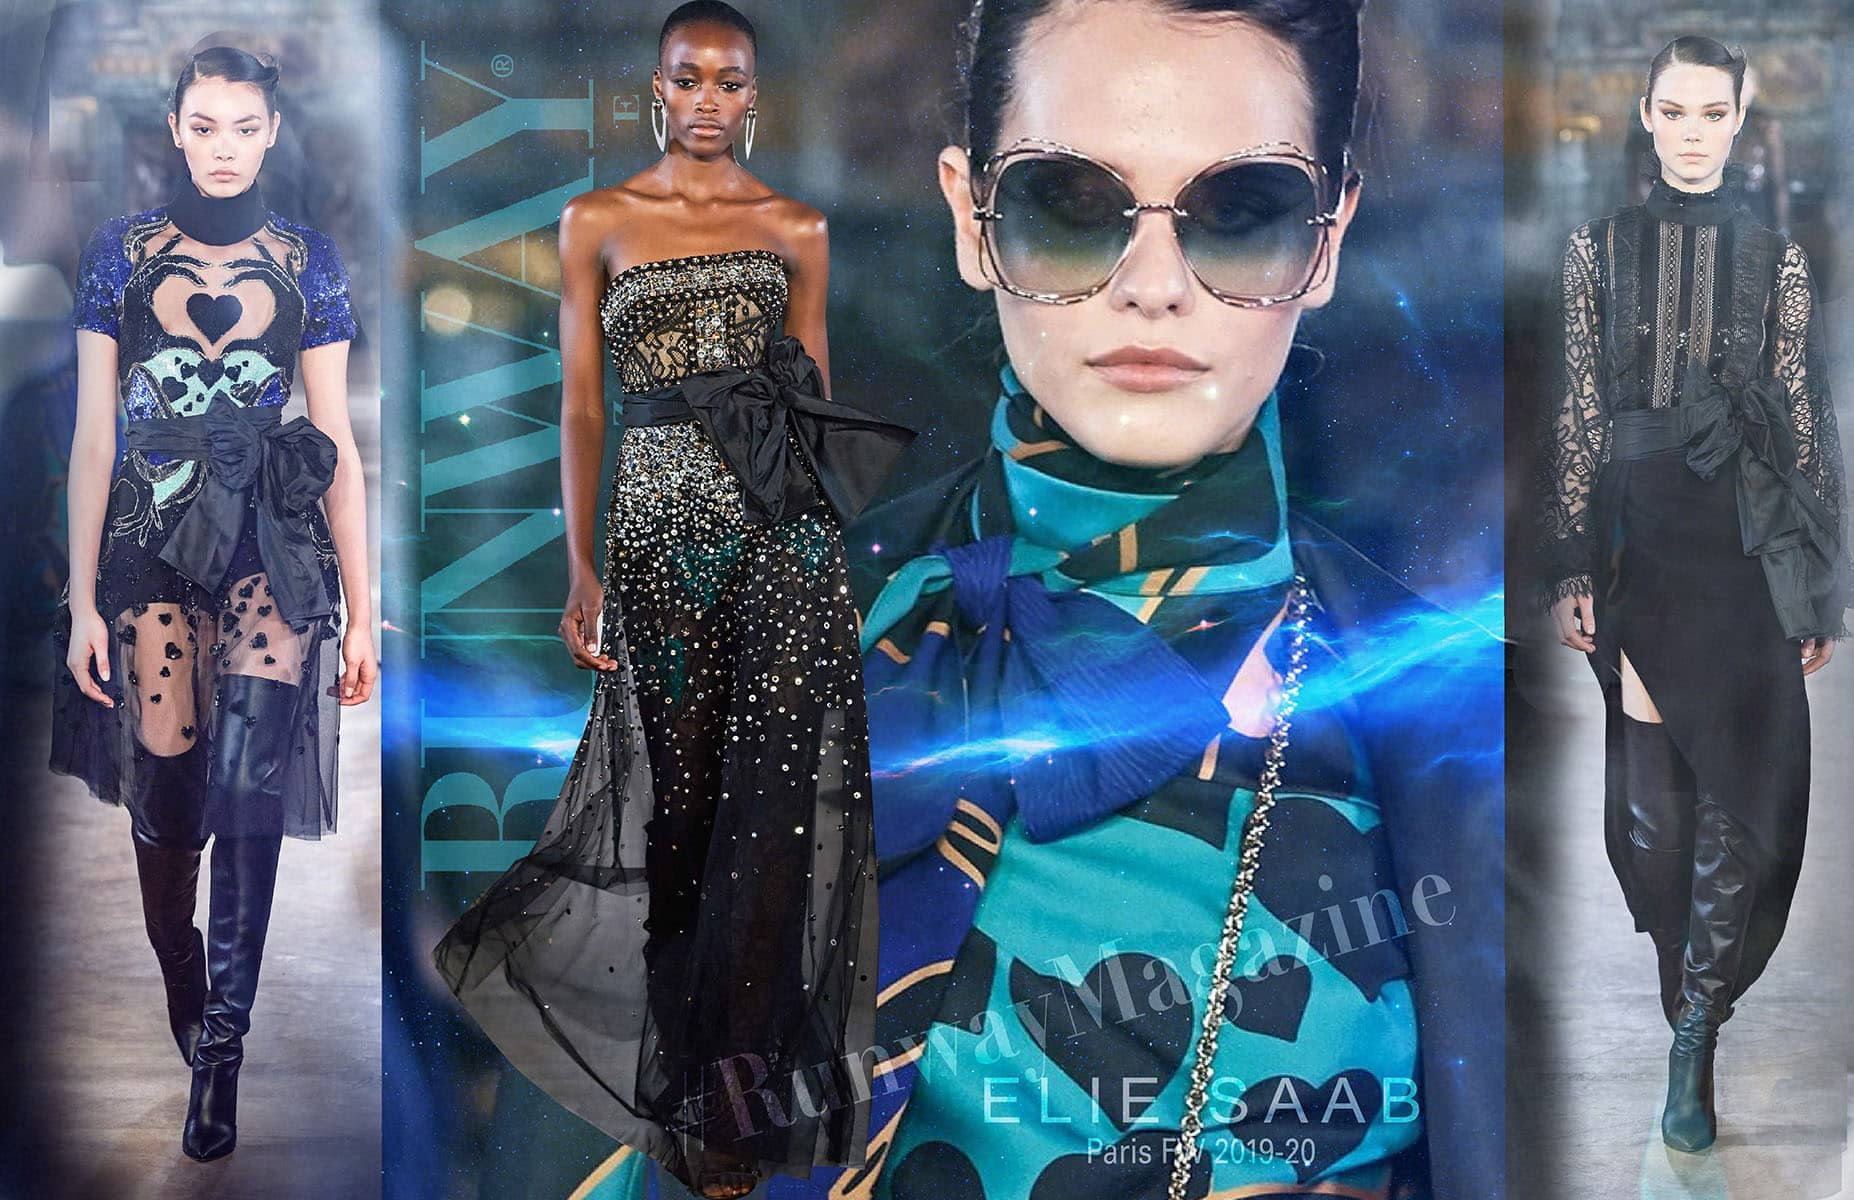 Elie Saab Fall-Winter 2019-2020 Paris by RUNWAY MAGAZINE